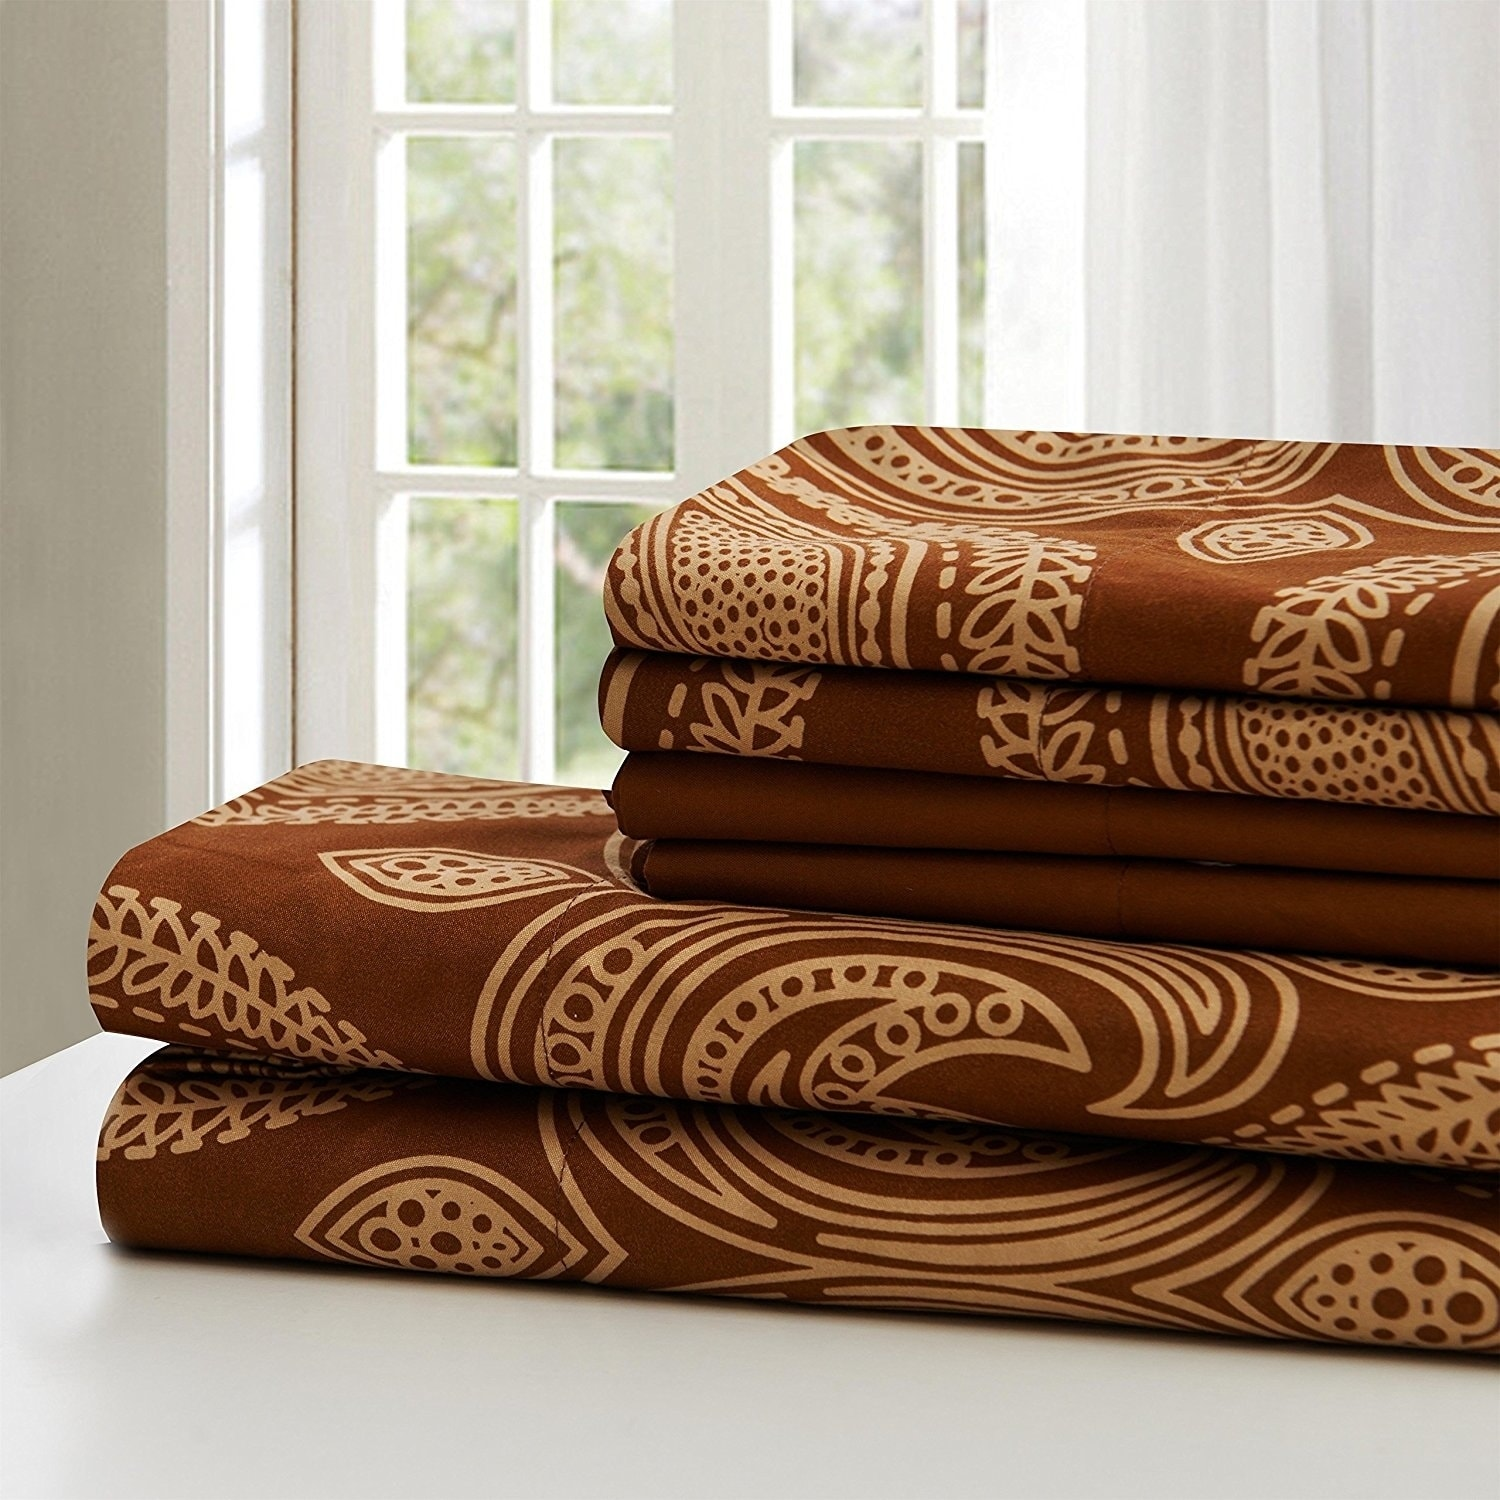 7631dda262 Shop Paisley Printed 6 Piece Deep Pocket 1800 Series Ultra Soft Bed Sheet  Set - Free Shipping On Orders Over $45 - Overstock - 20519879